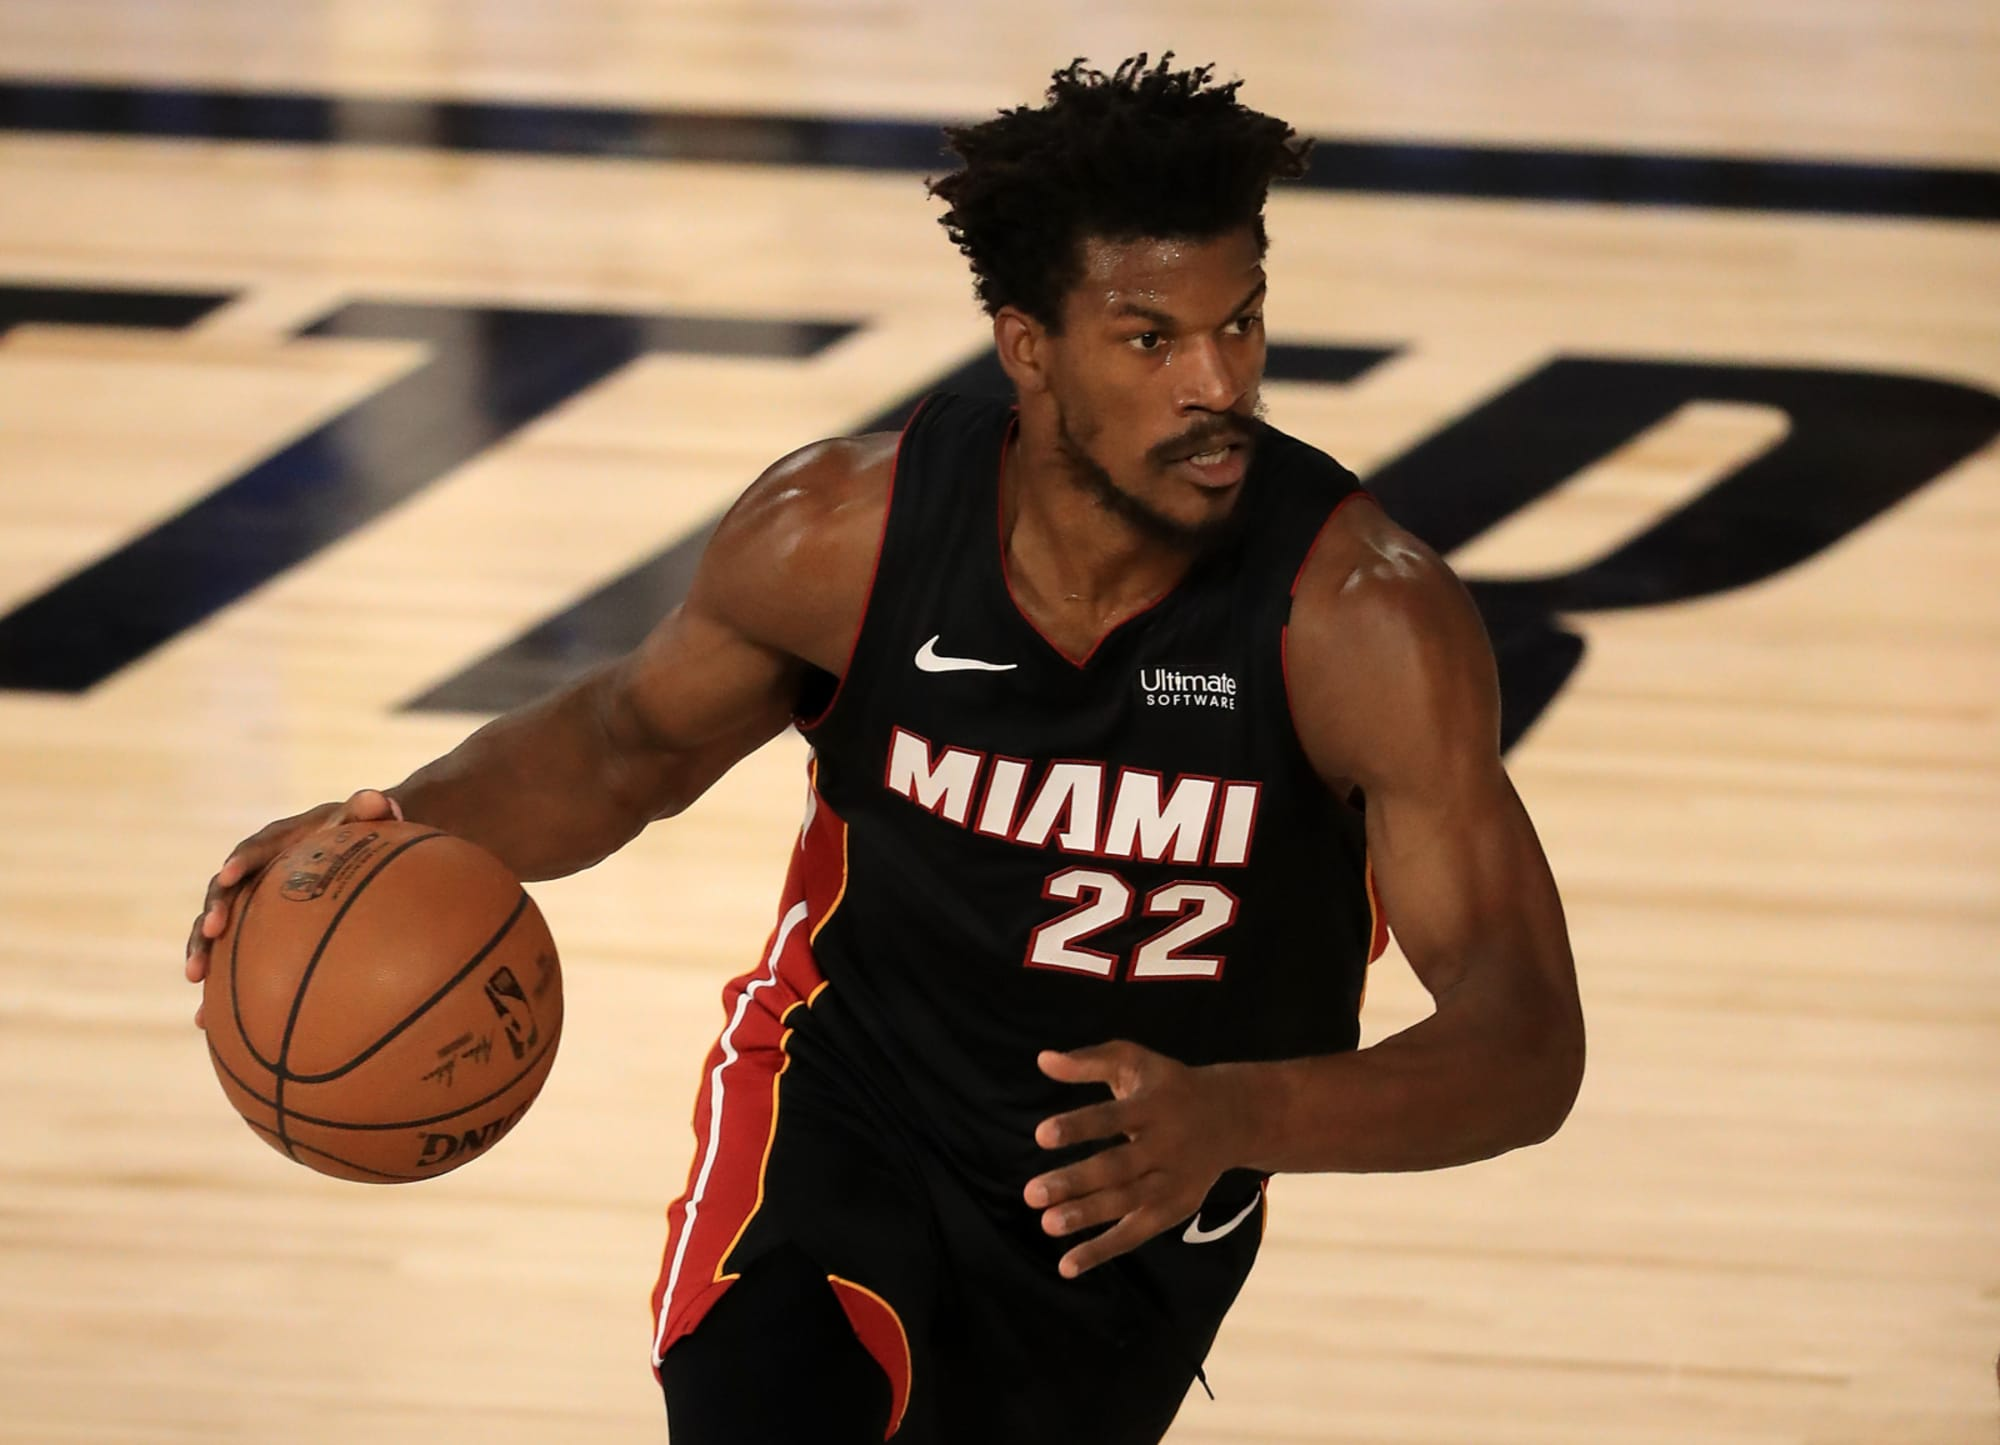 NBA star Jimmy Butler of the Miami Heat playing basketball